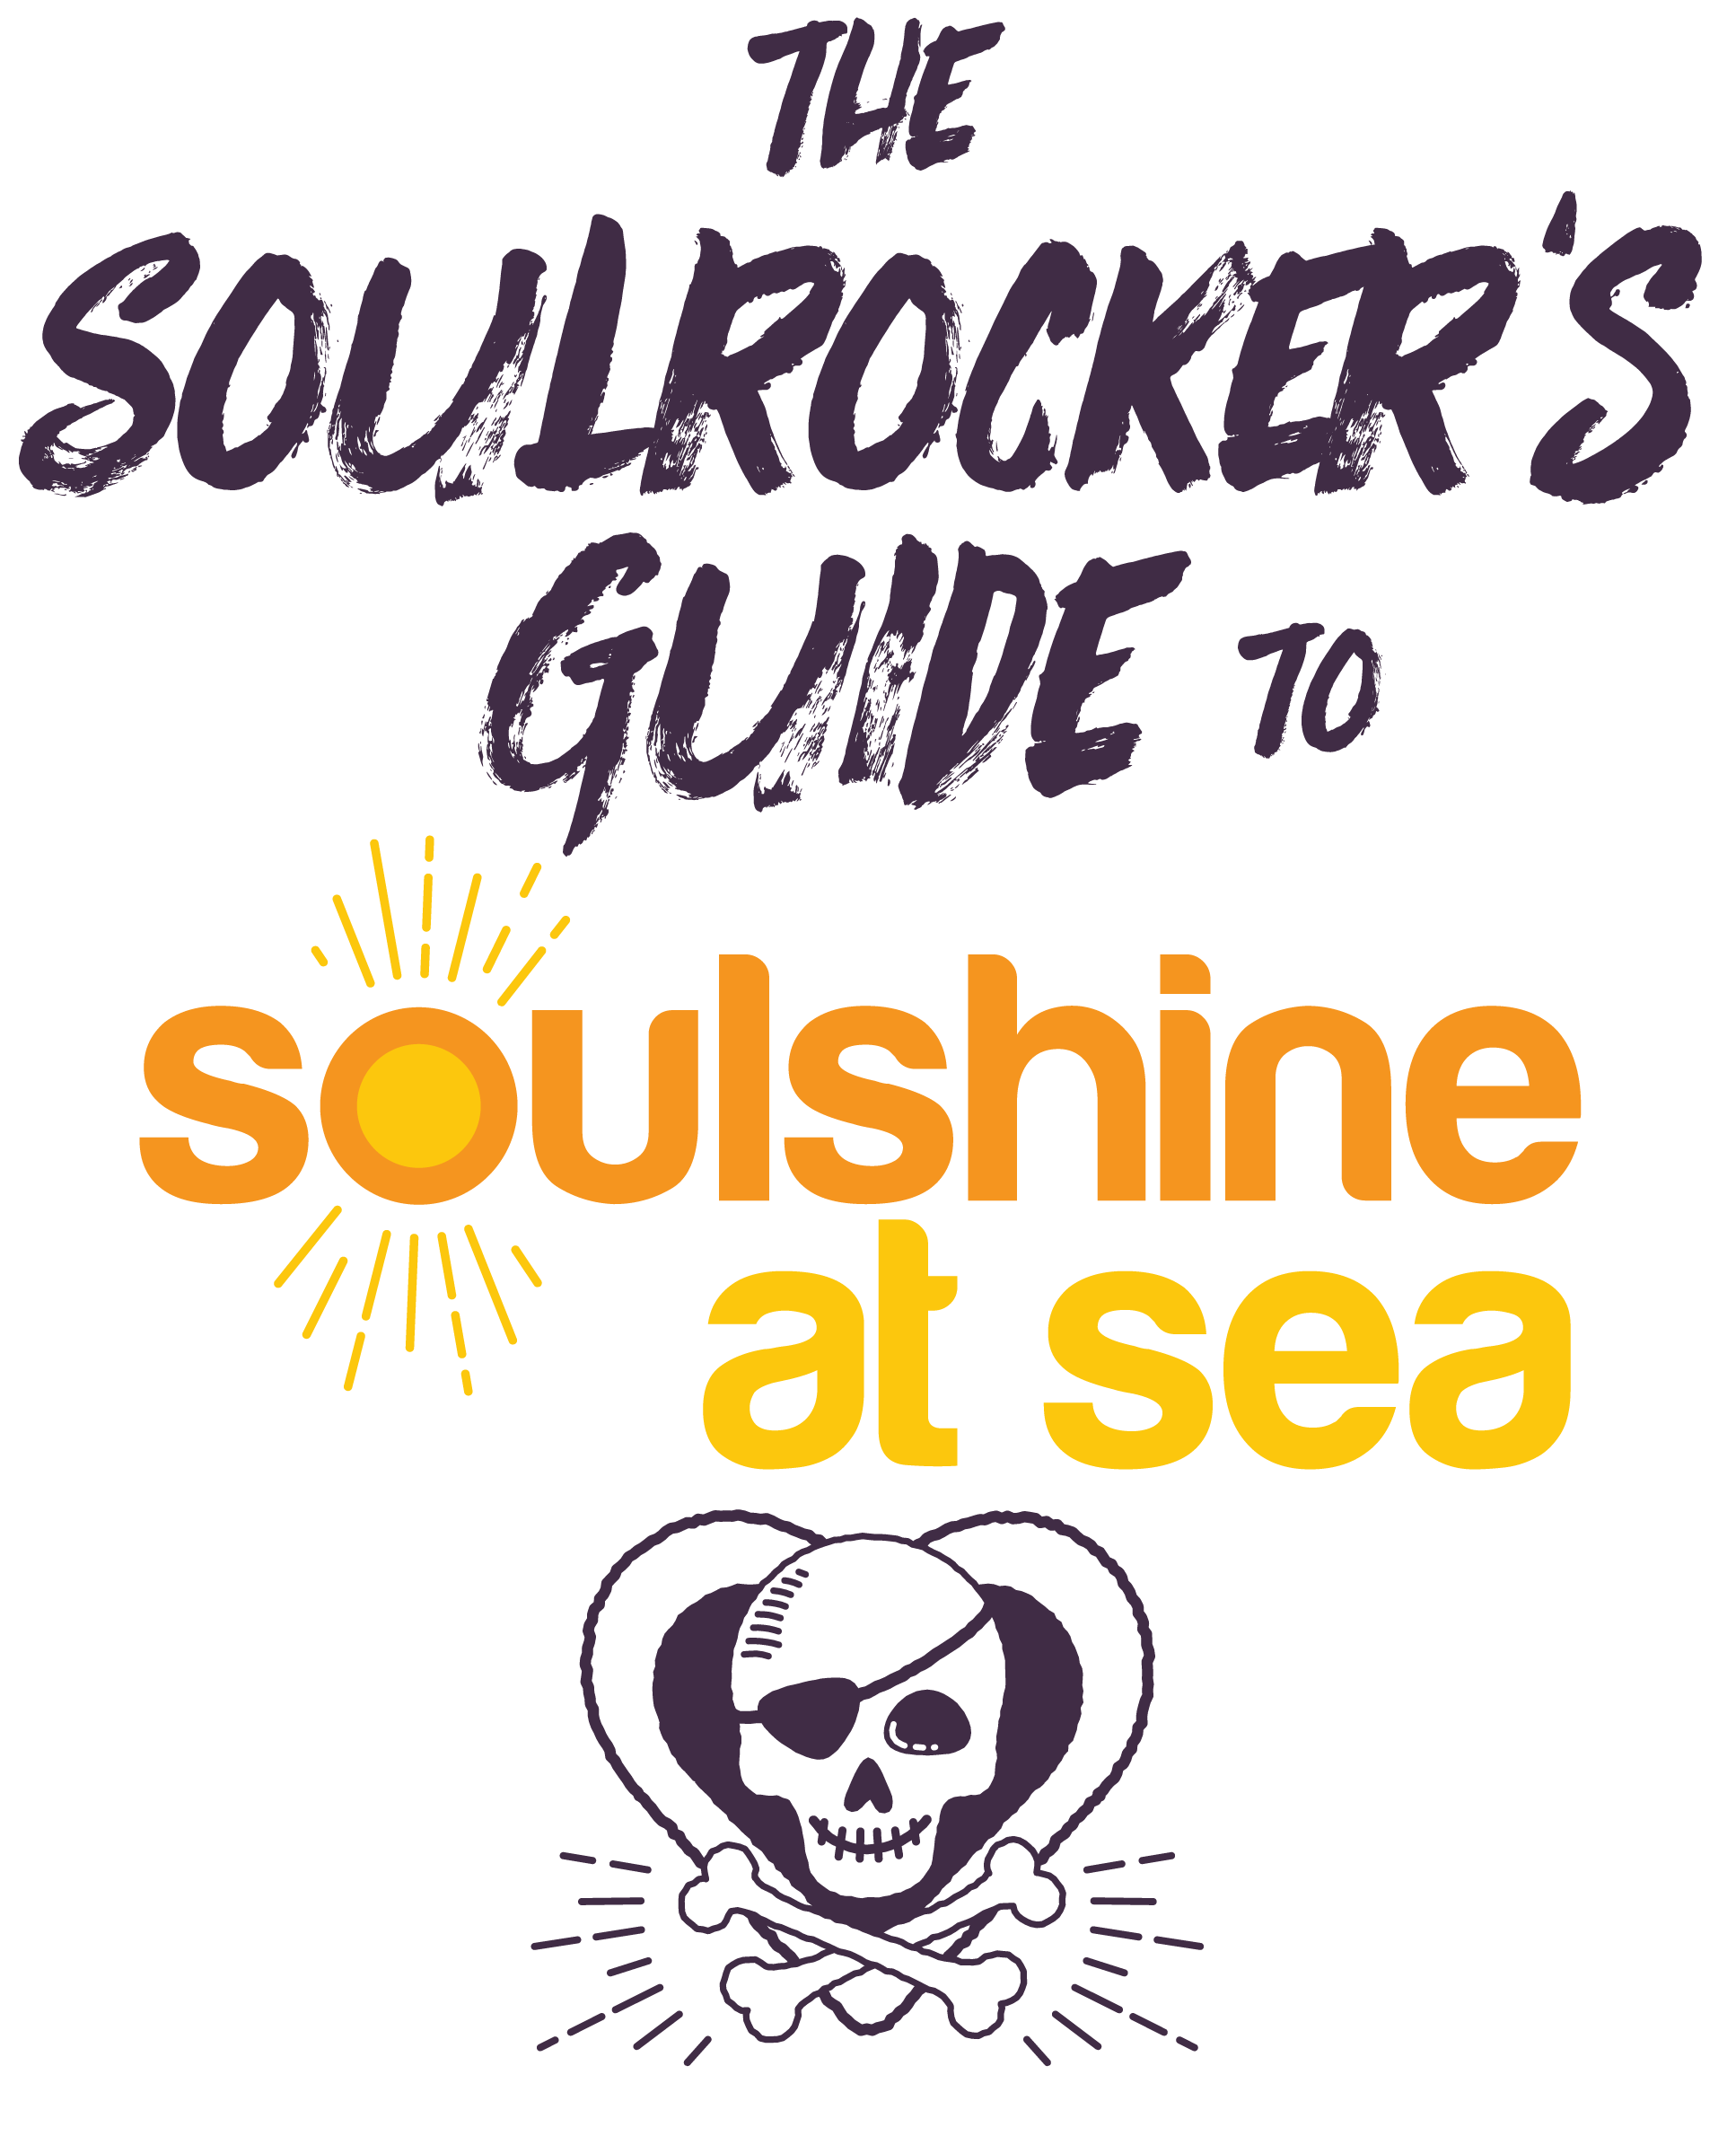 The Soulrocker's Guide to Soulshine at Sea